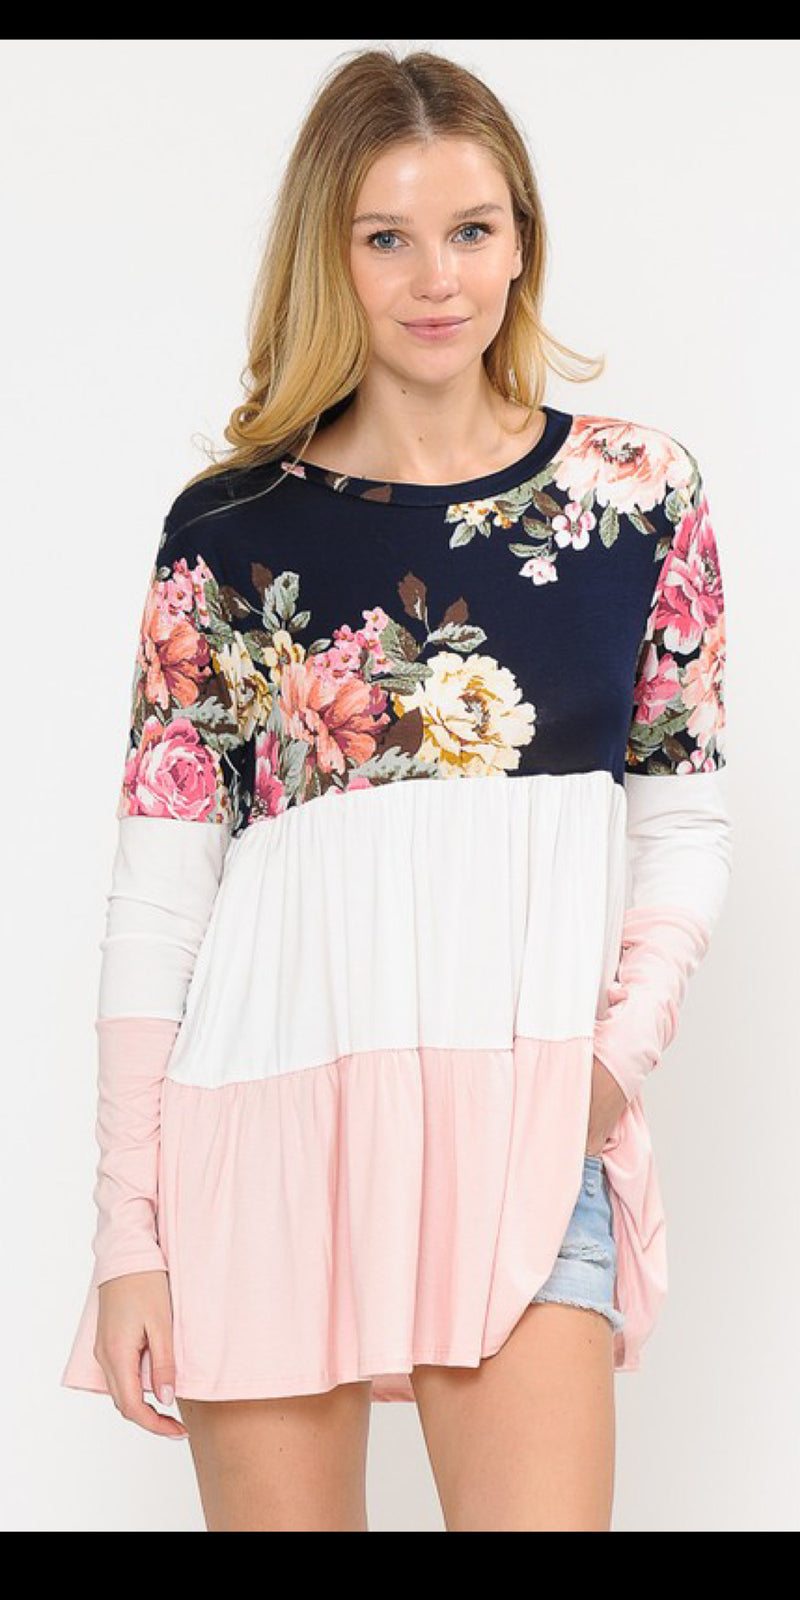 Lana Navy Floral Top - Also in Plus Size